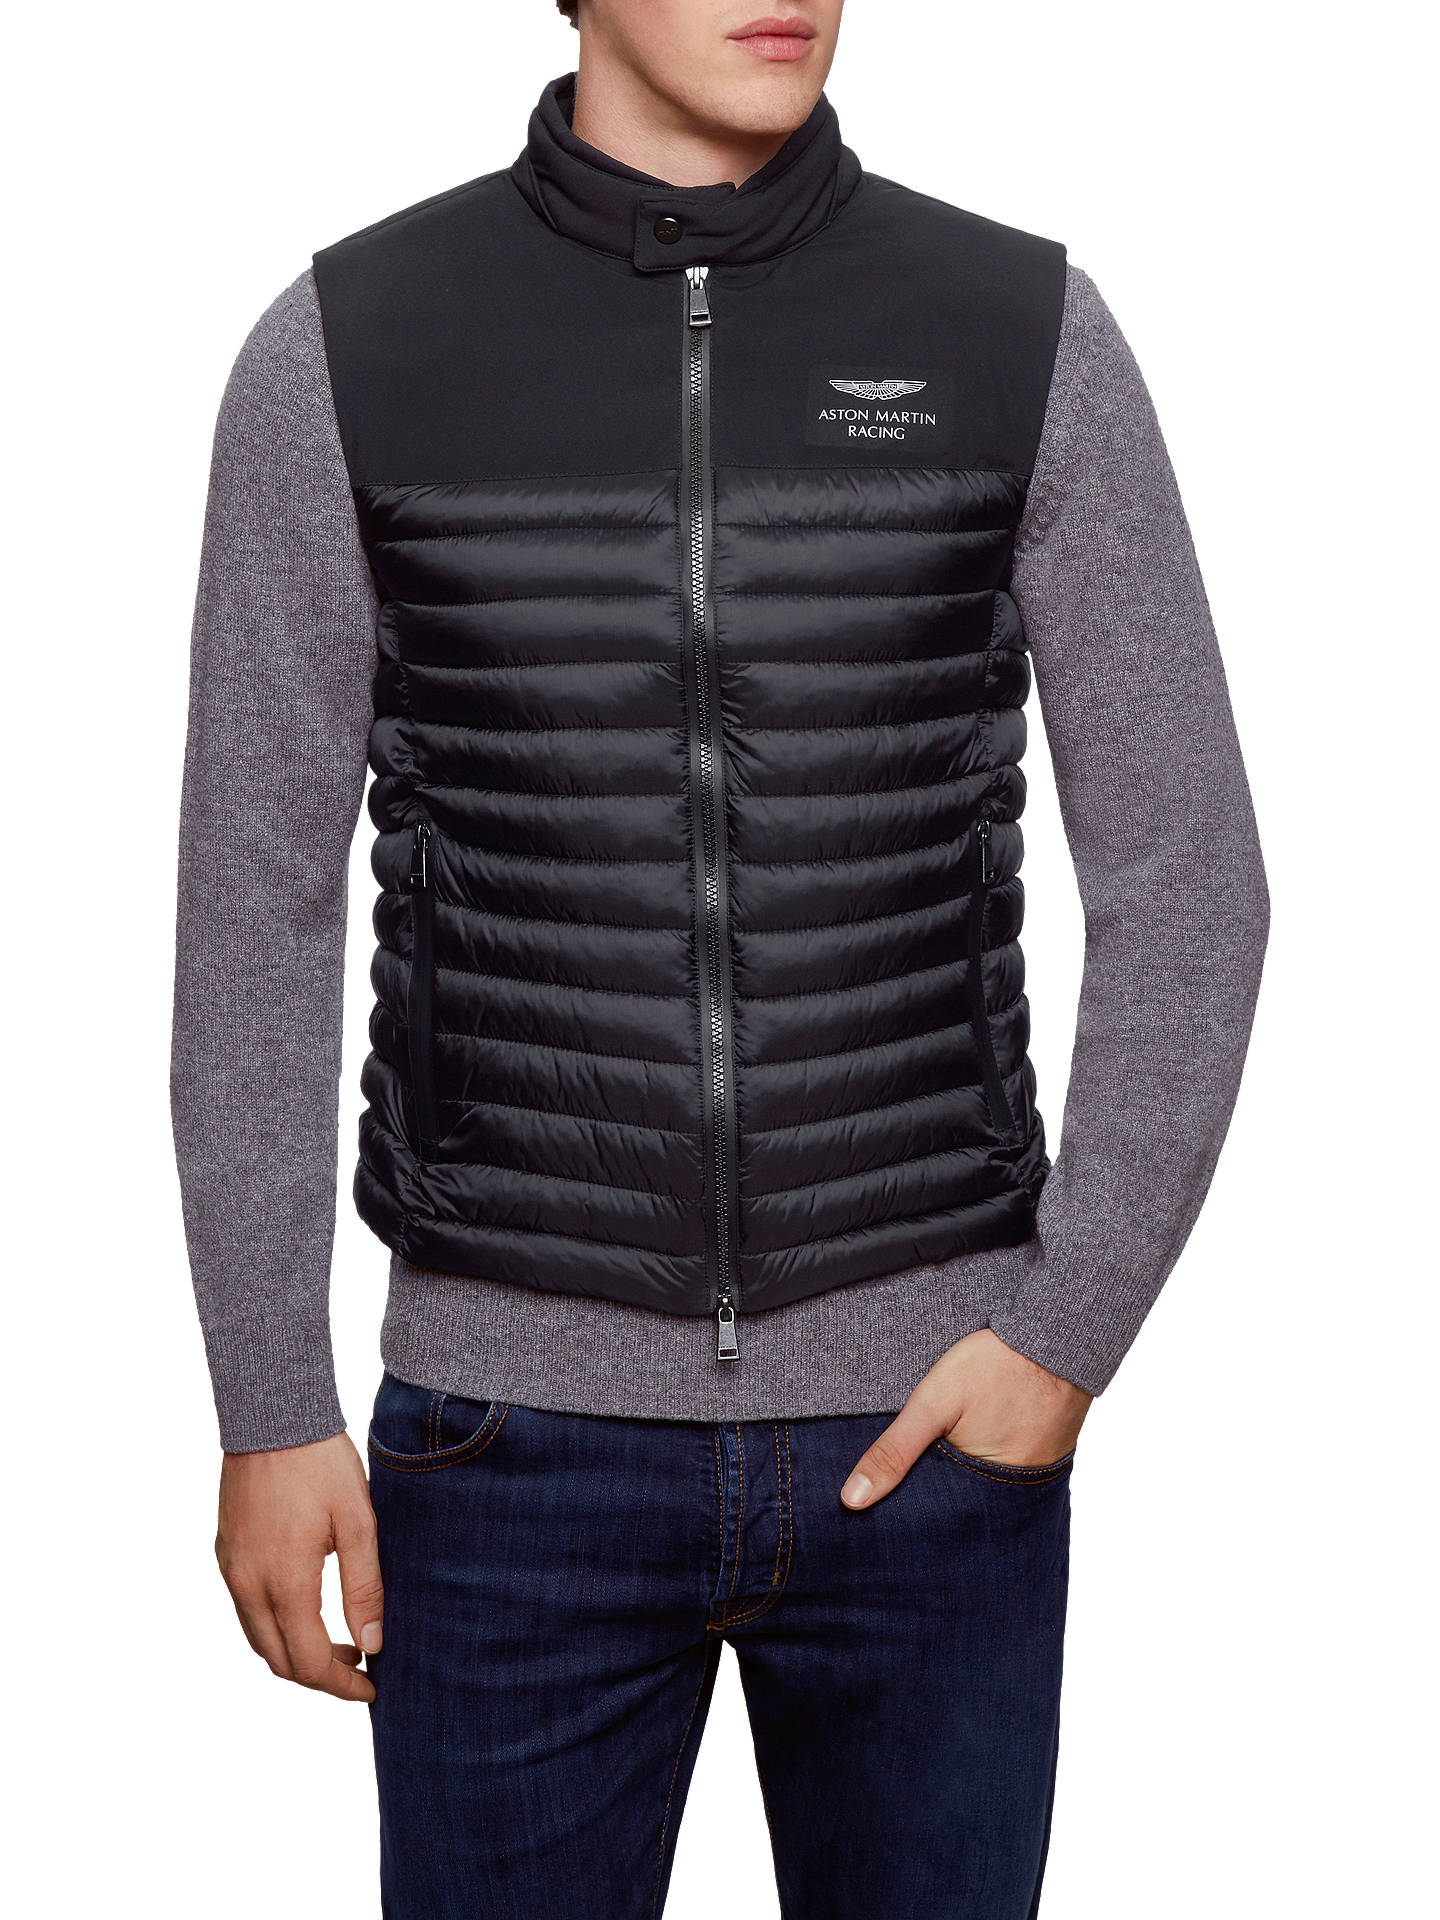 91f74cce57 Buy Hackett London AMR Gilet, Black, S Online at johnlewis.com ...